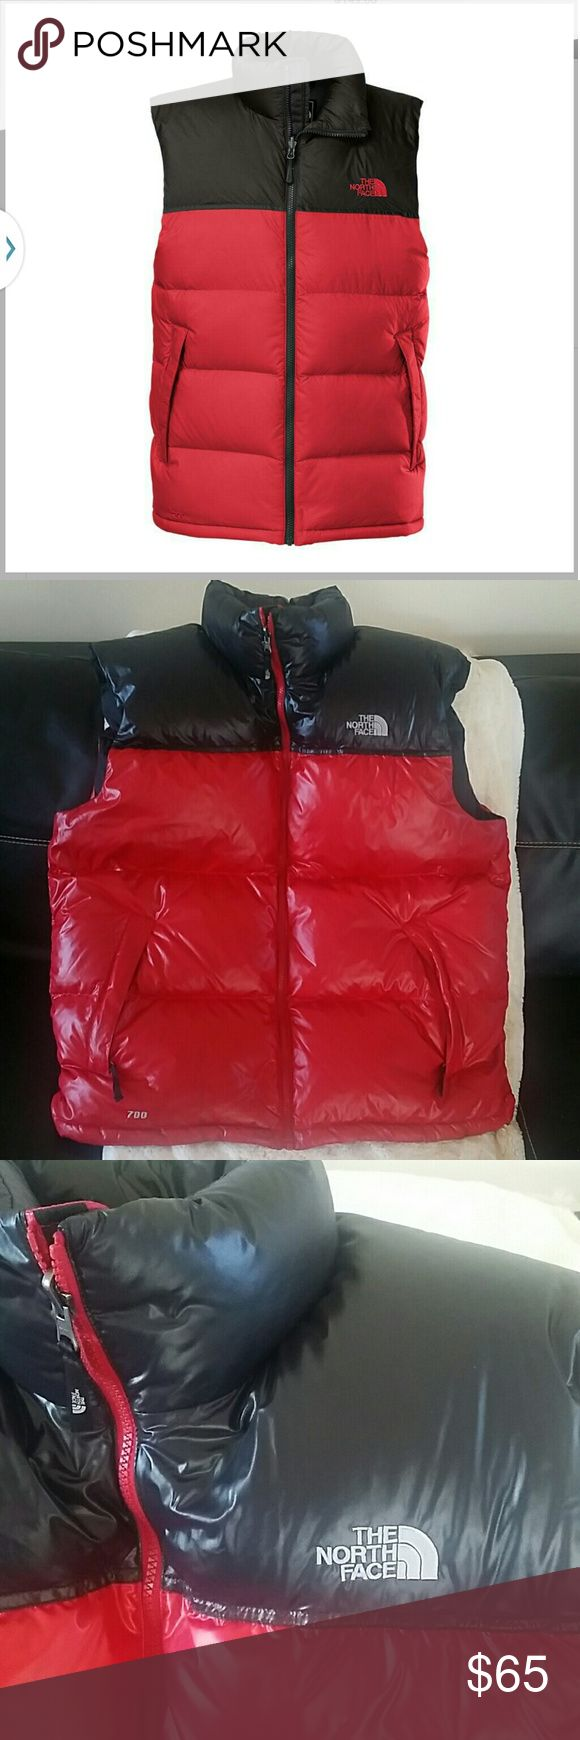 Men XL North Face Puffer Nuptse Vest Red Black Classic Insulated goose down. Worn a few times..Has some staining as shown on last picture..faint lines.. Can see.in front bottom left side of vest. Good condition otherwise.... Final Offer.  Additional pics posted in closet... The North Face Jackets & Coats Puffers